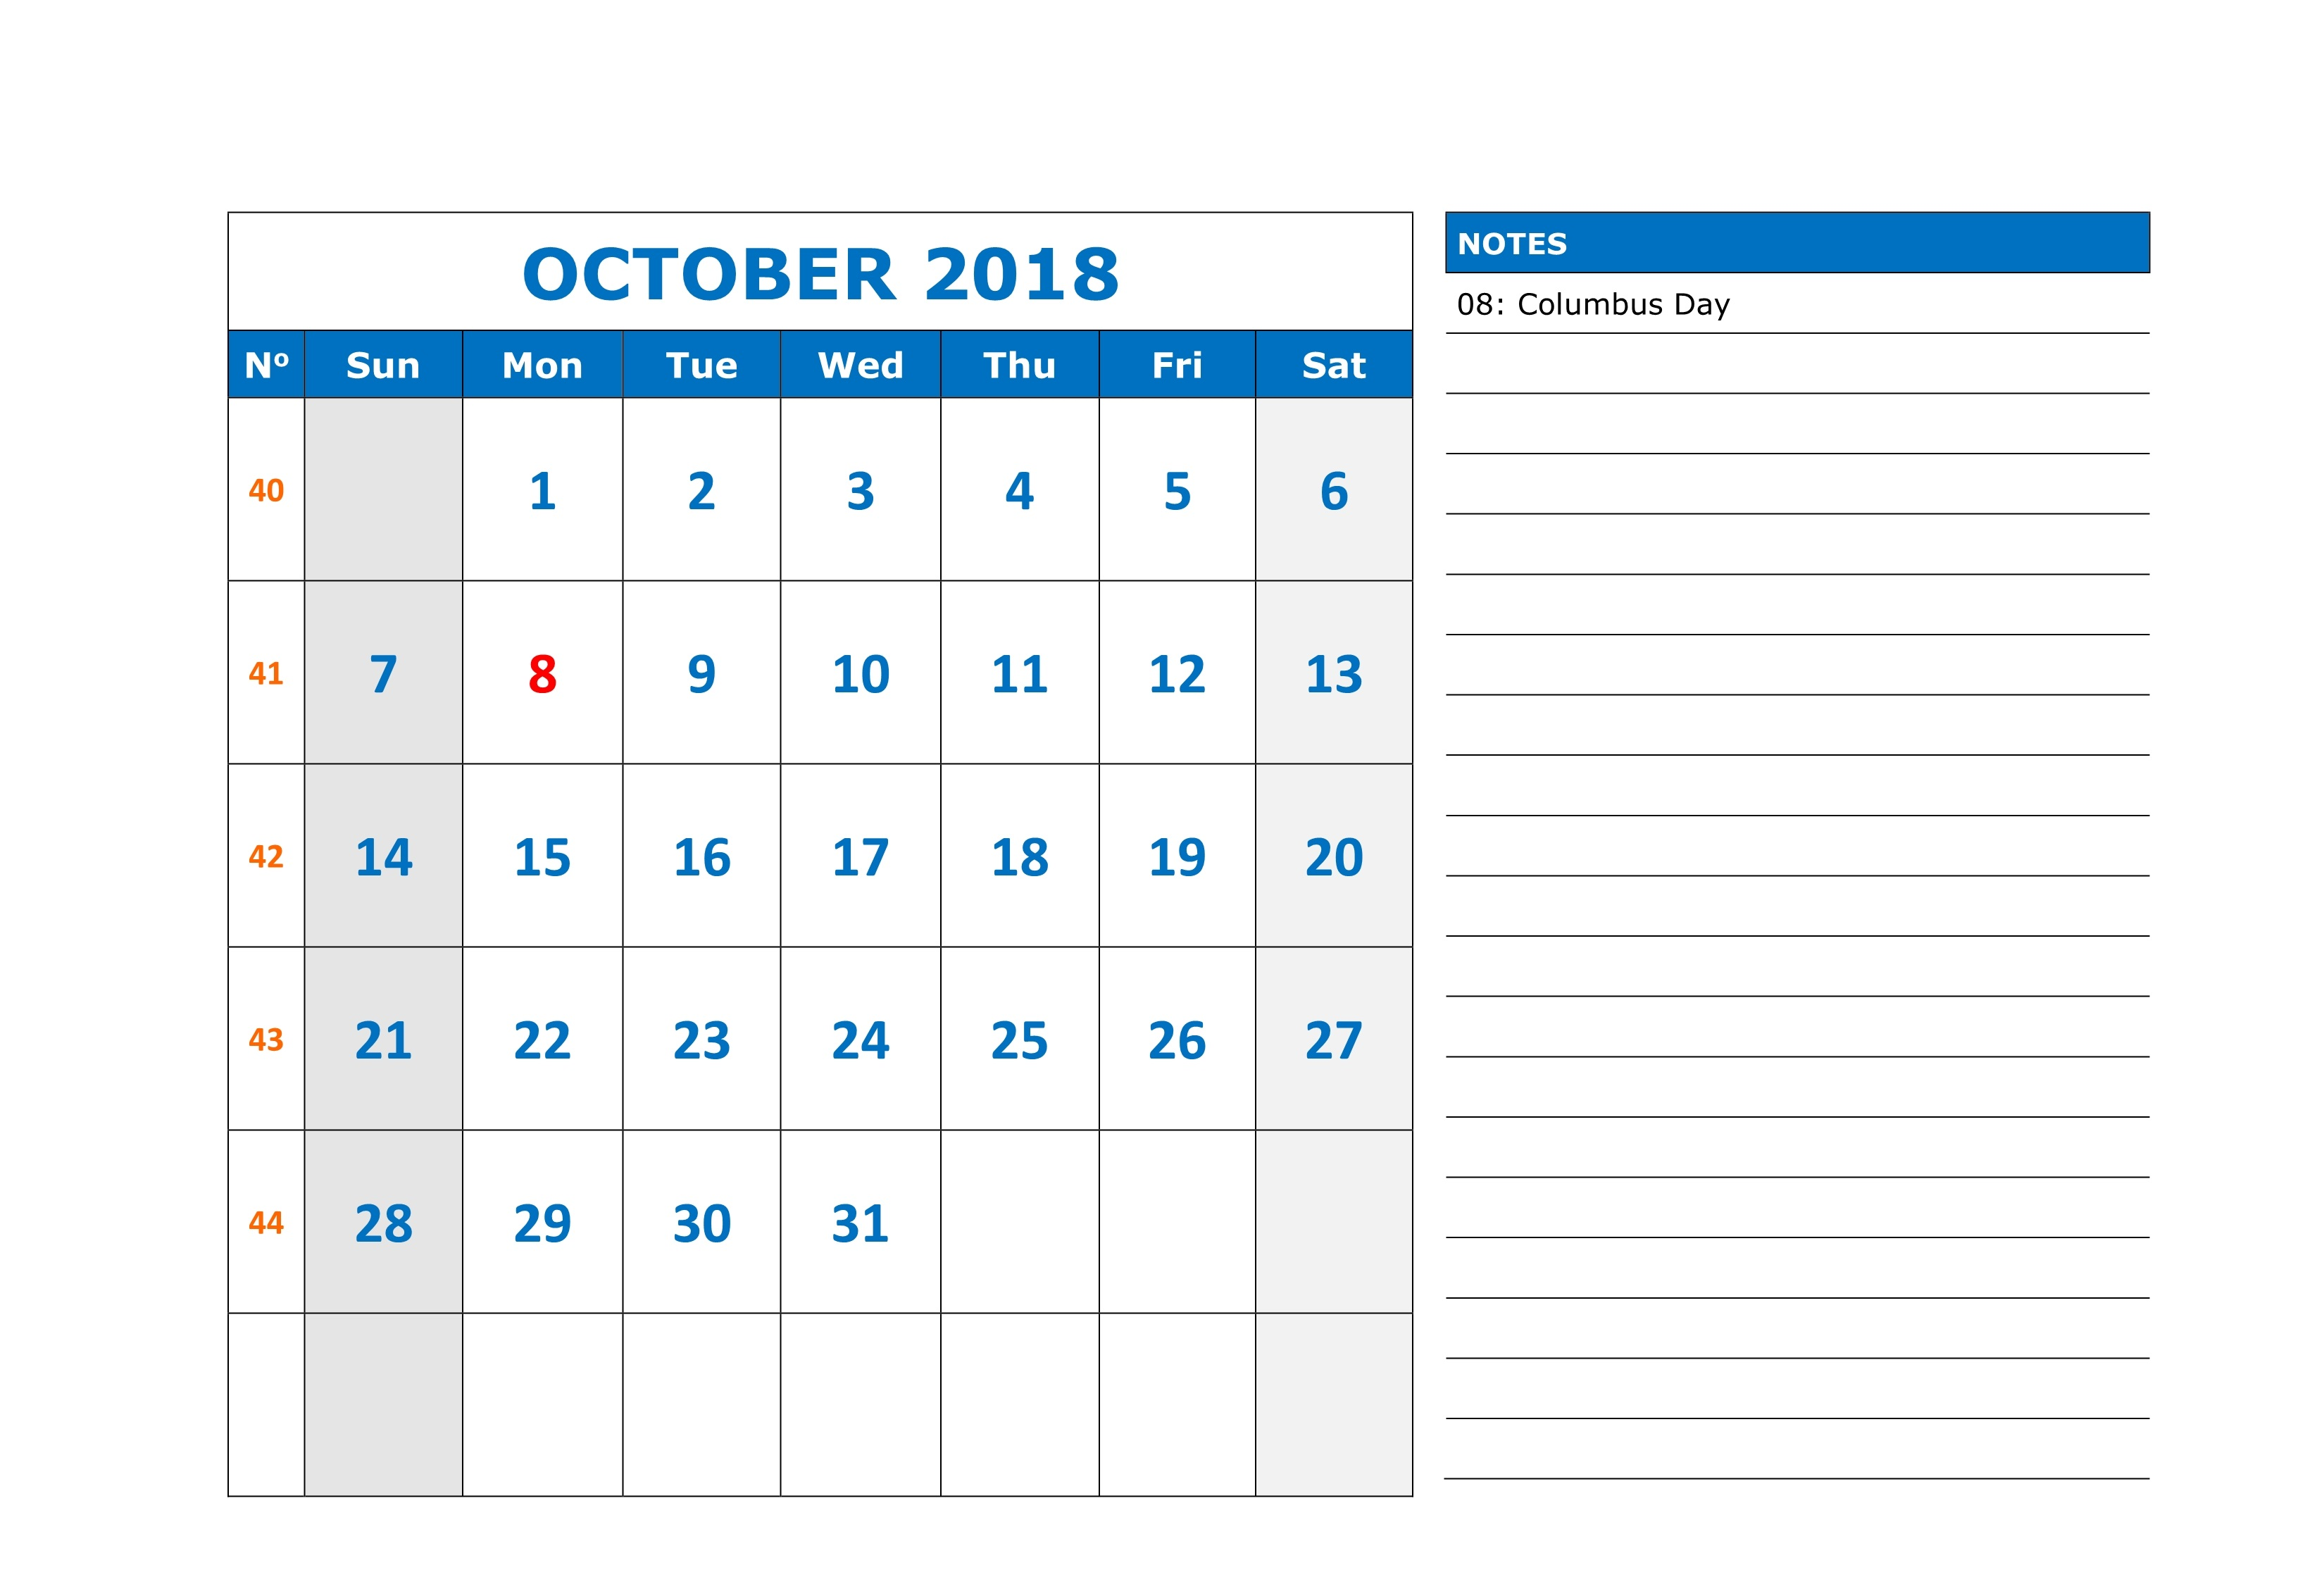 October 2018 Calendar Template With Holidays Notes